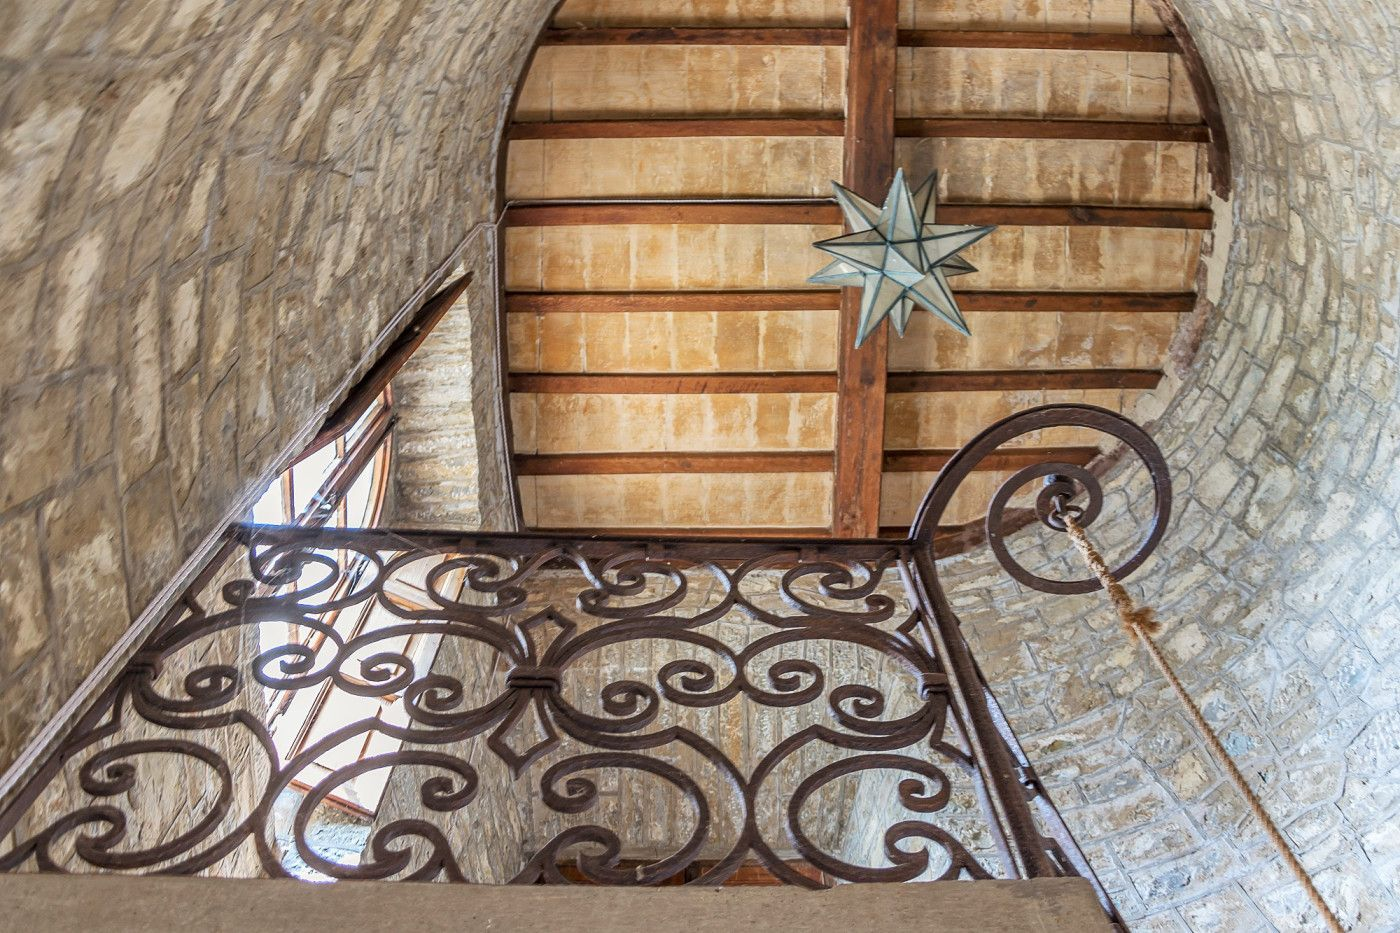 Exploring Castello di Montegiove | Wine cellars, Staircases and ...